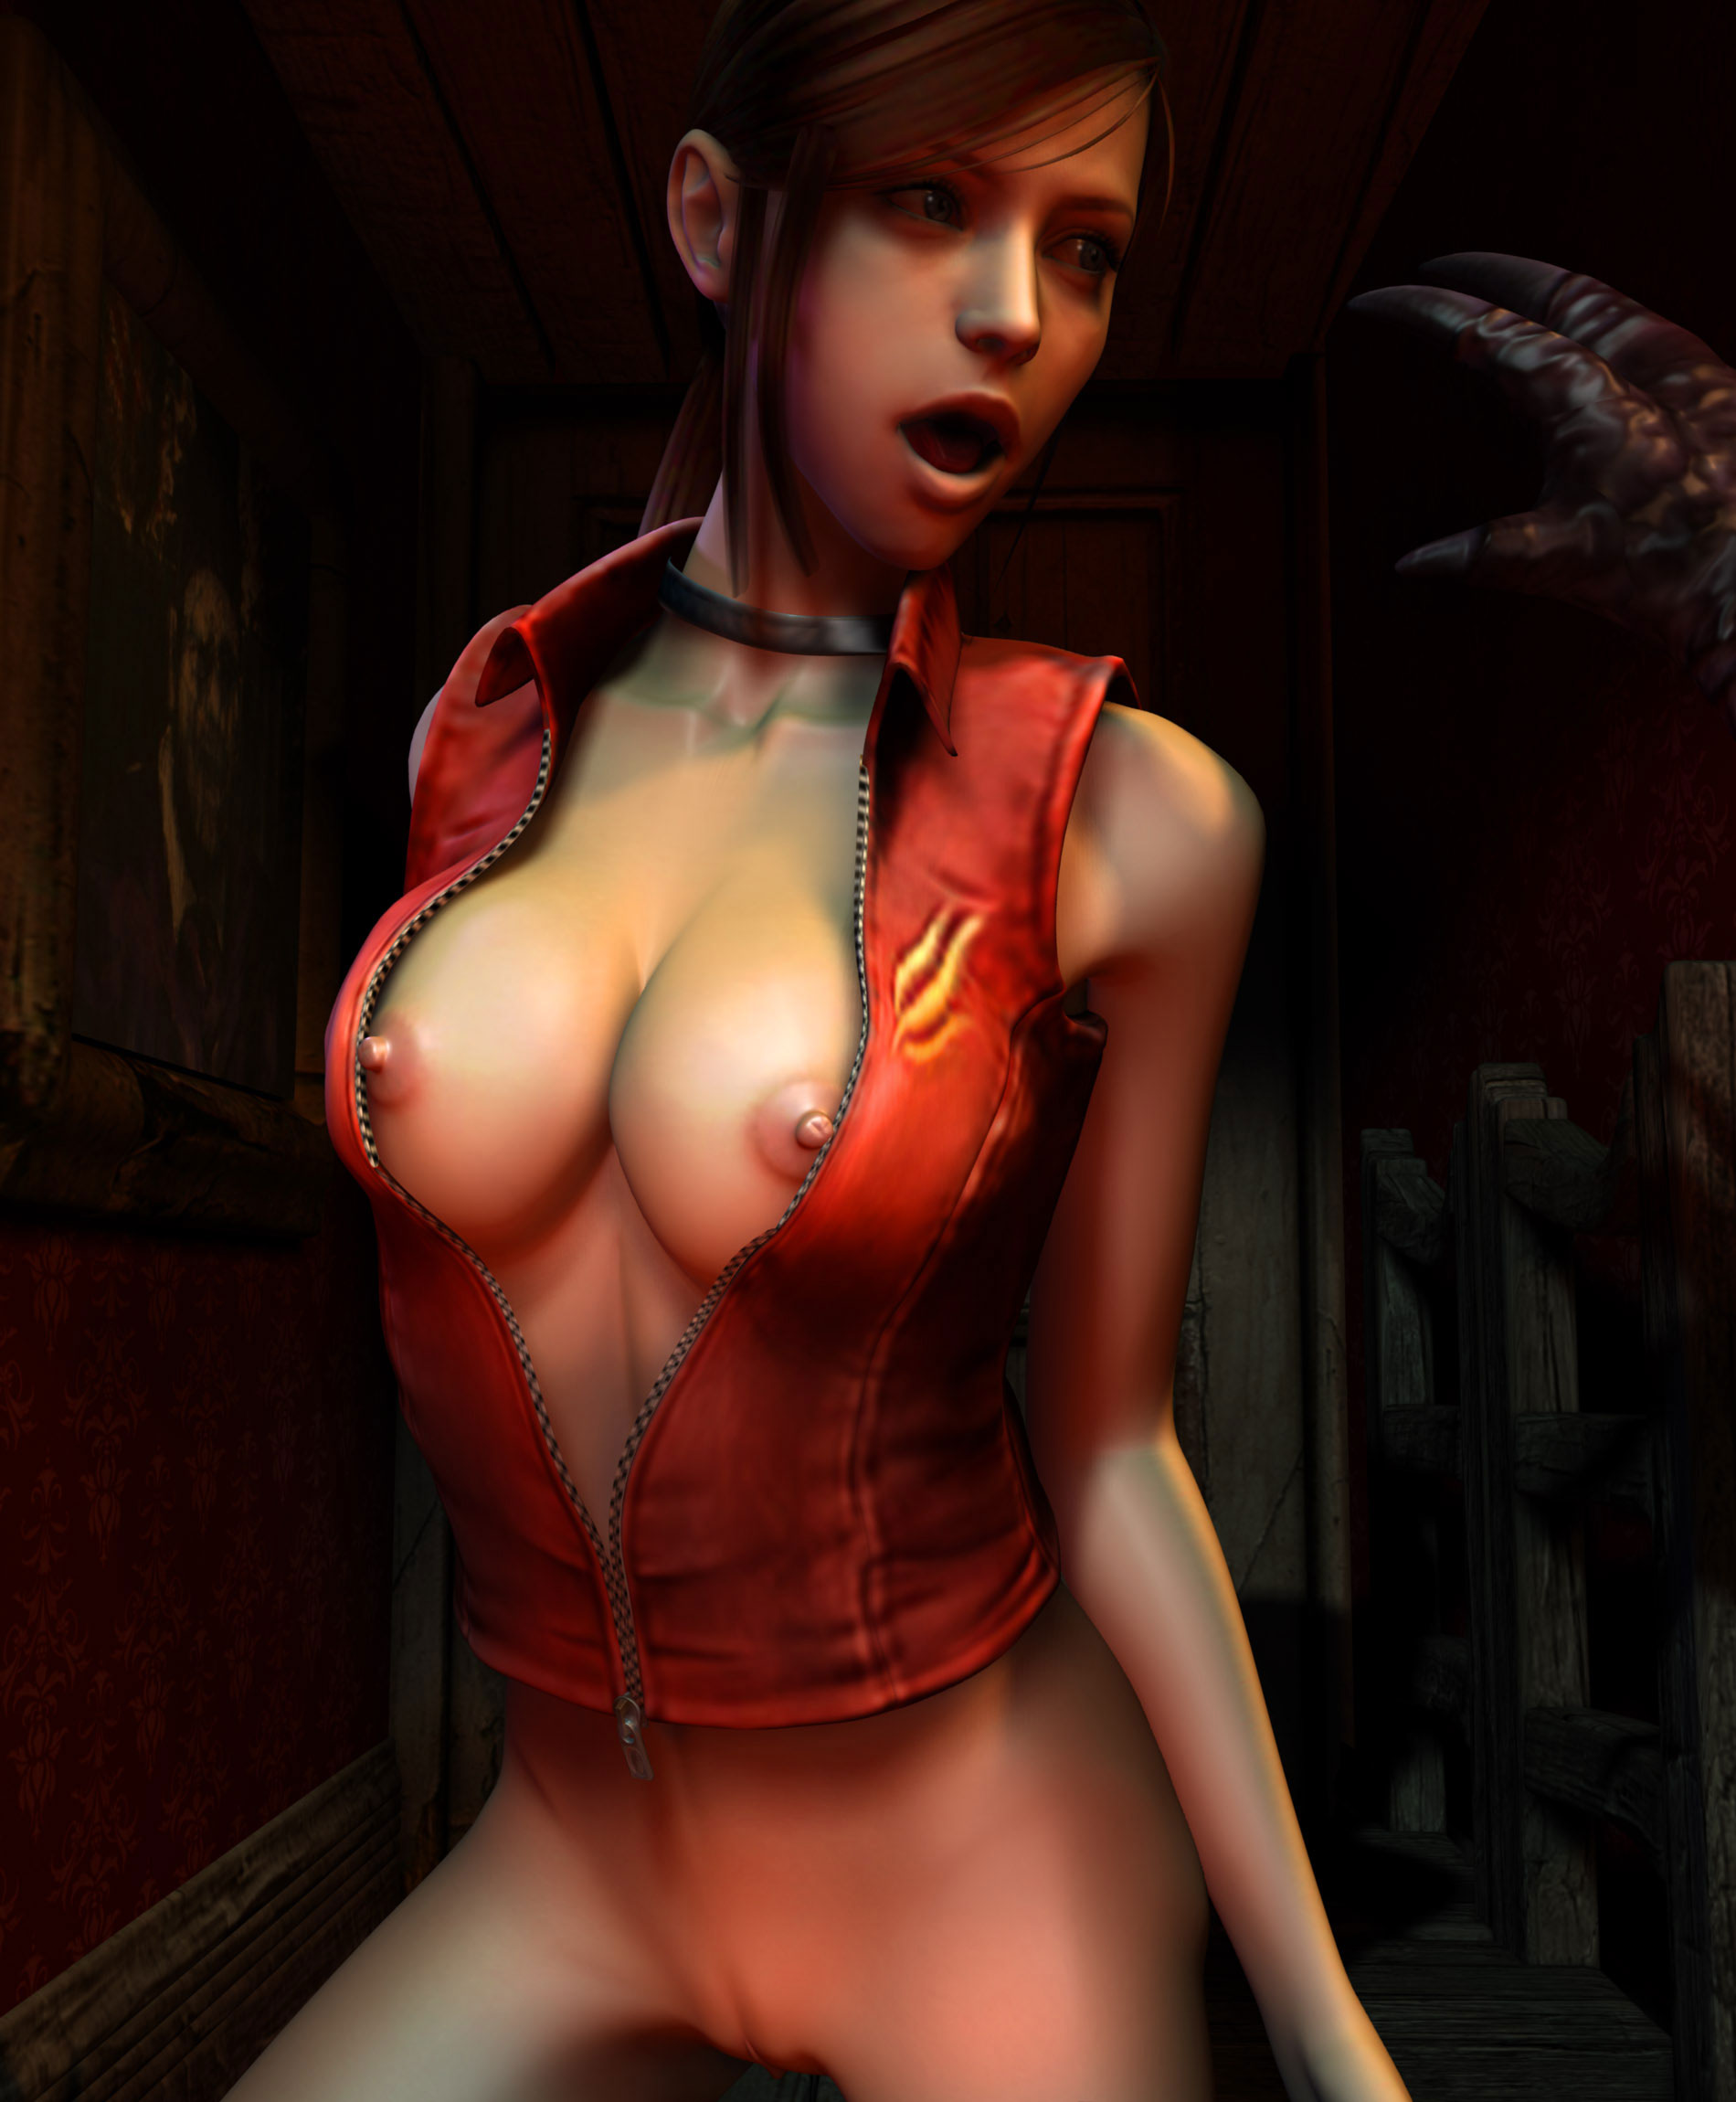 Hot nude boobs ada wong sex pictures